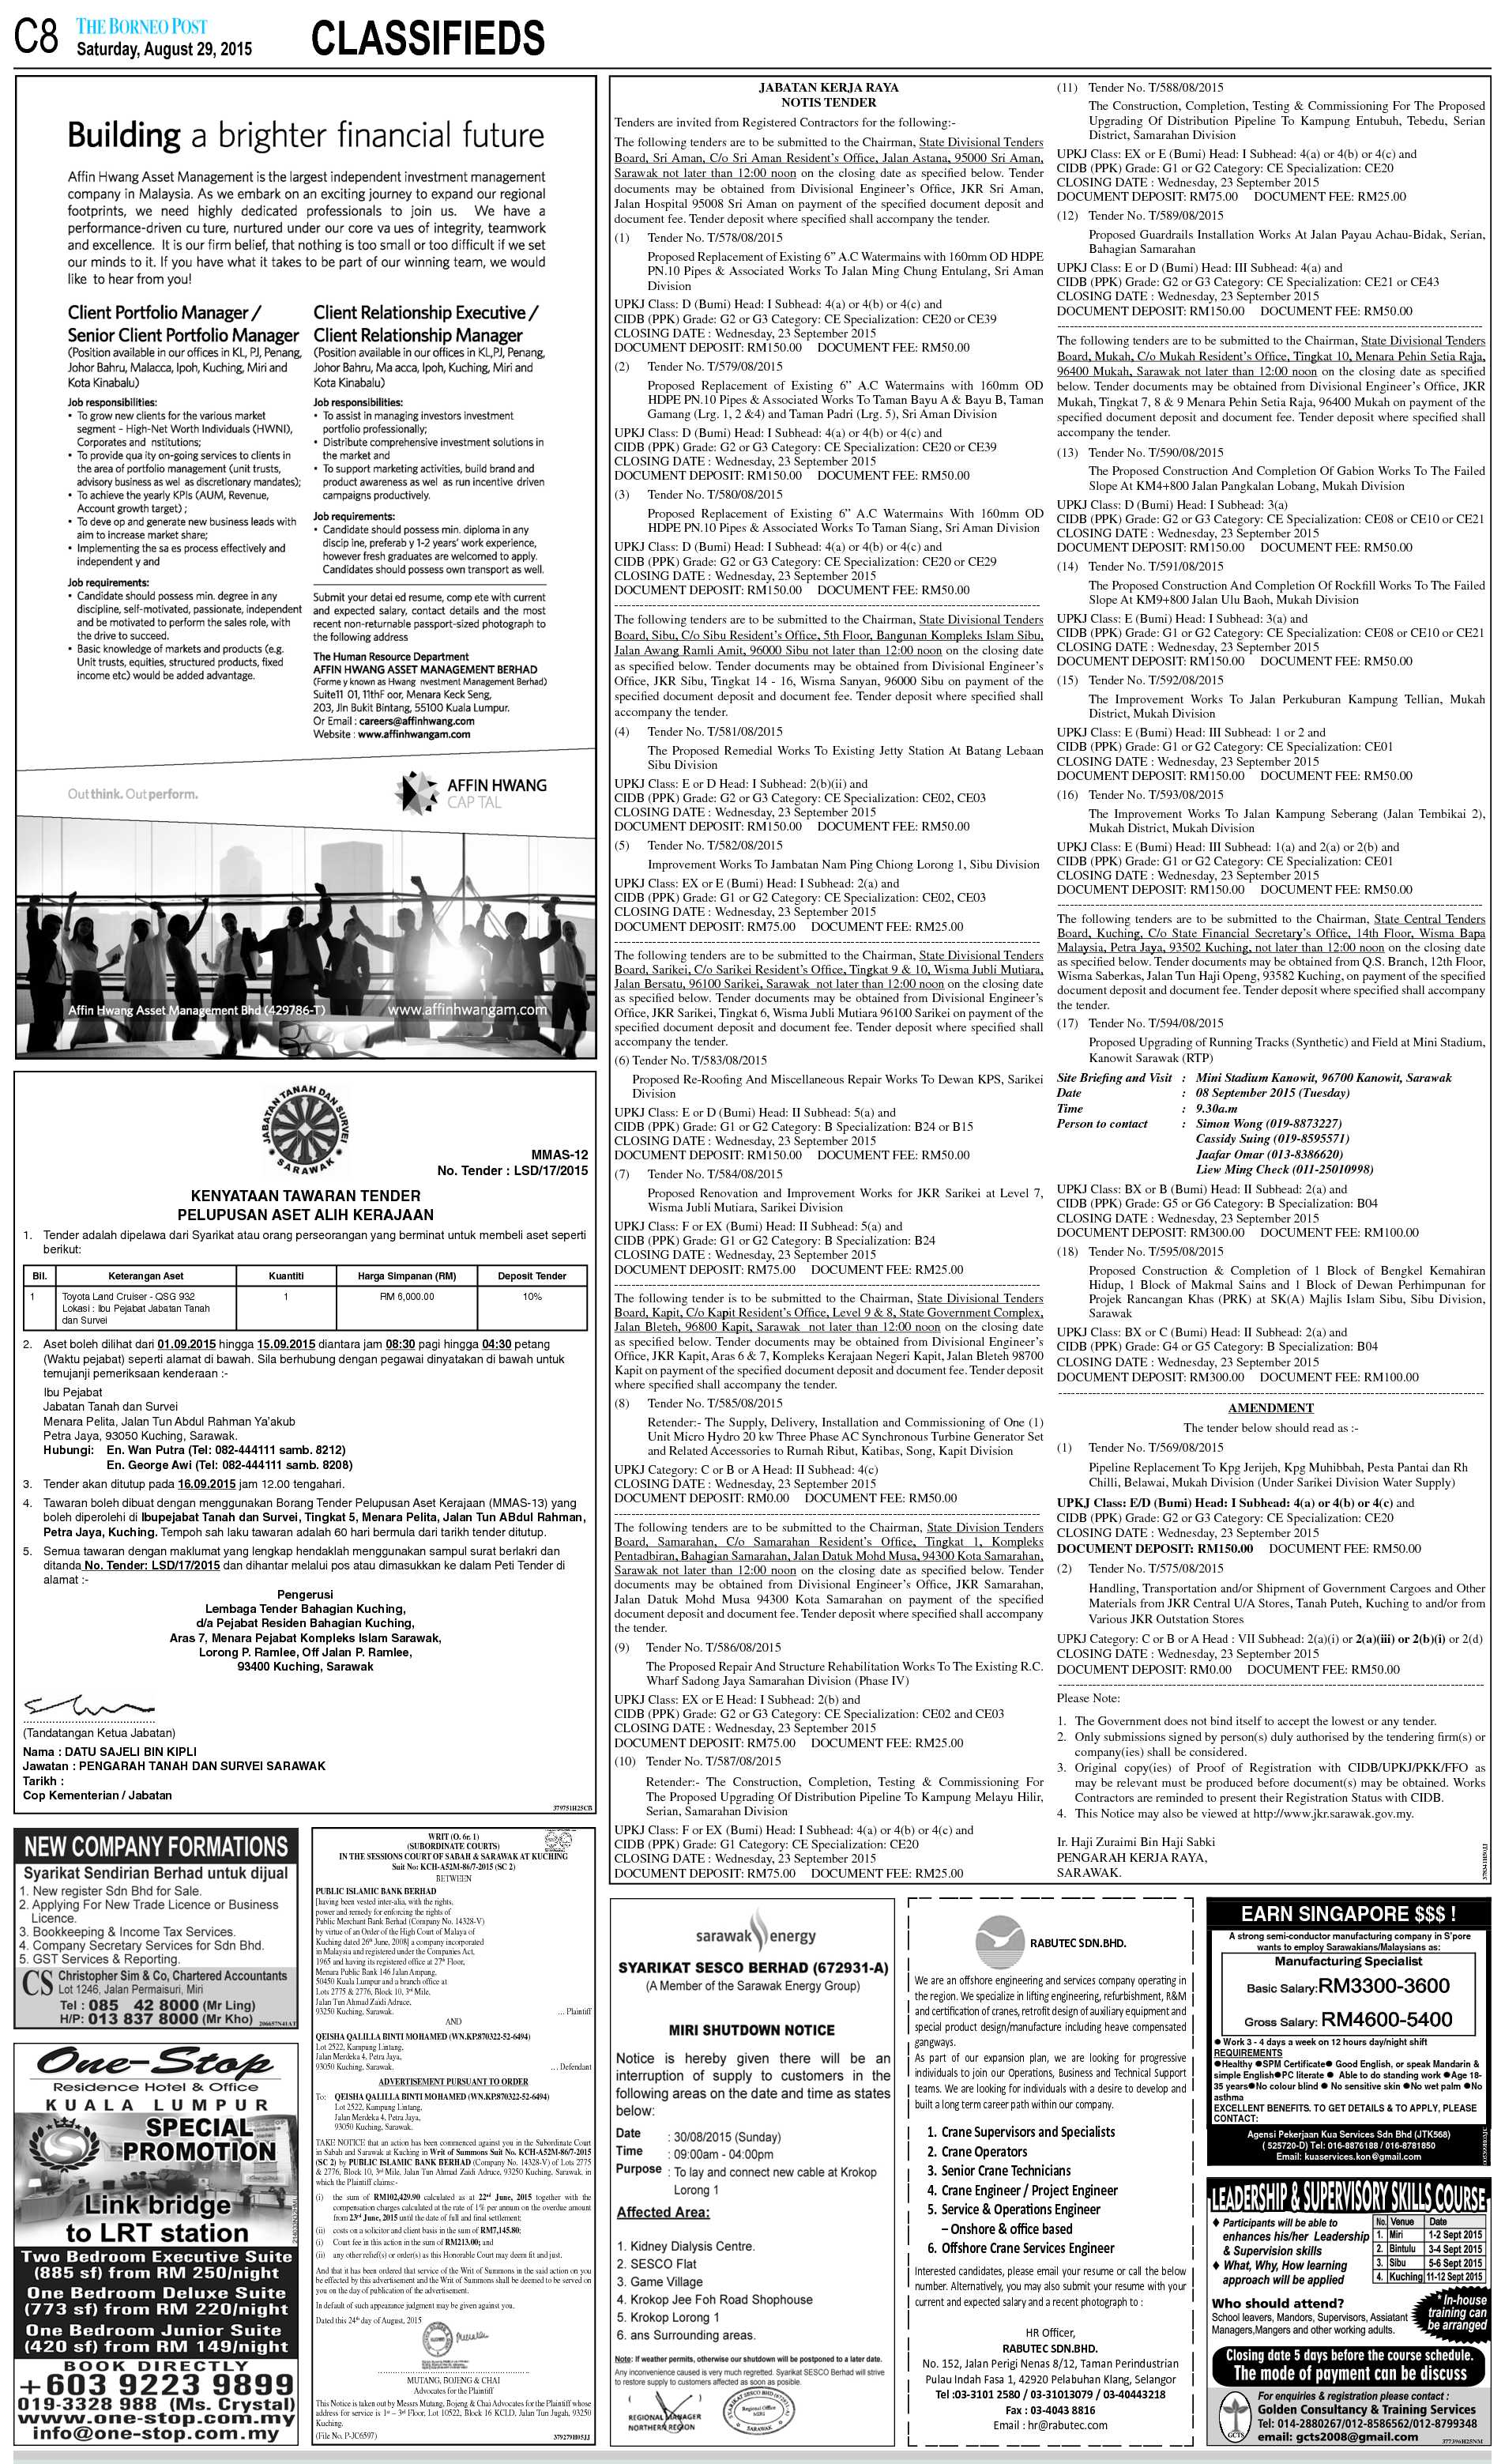 Saturday - Aug 29 | The Borneo Post Classifieds